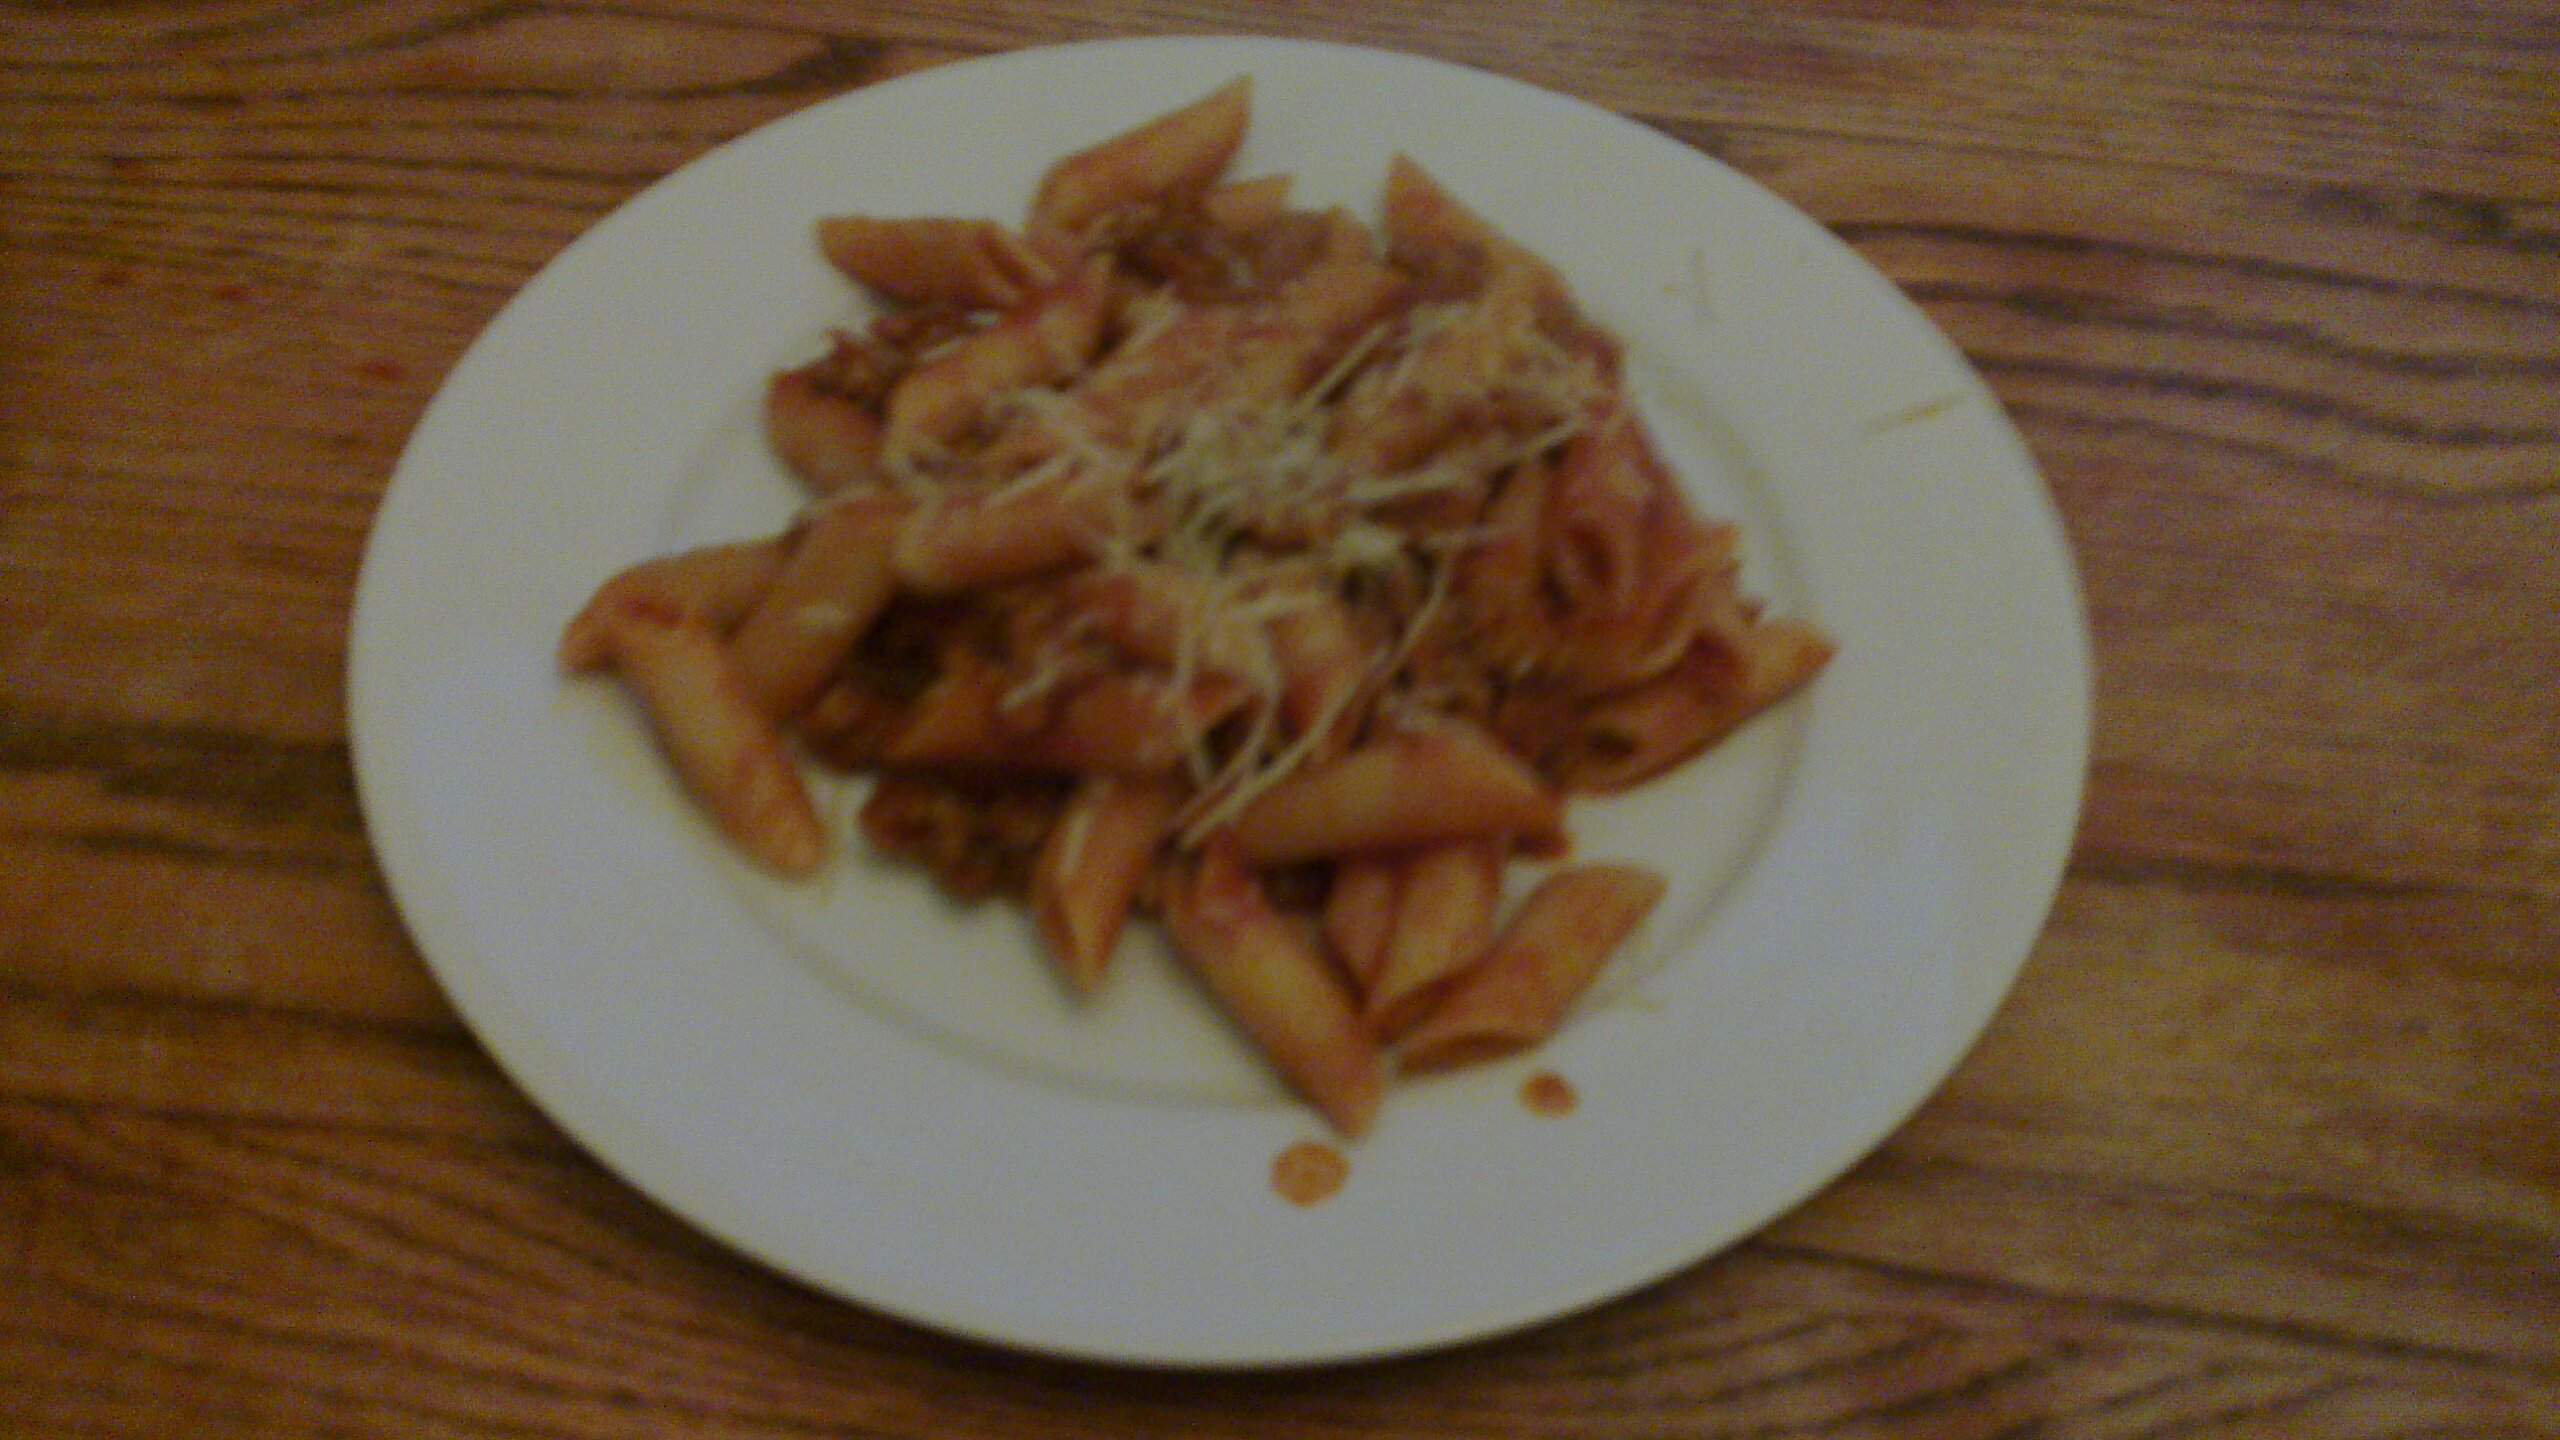 File:Plated penne pasta with hearty meat sauce.jpg - Wikimedia Commons